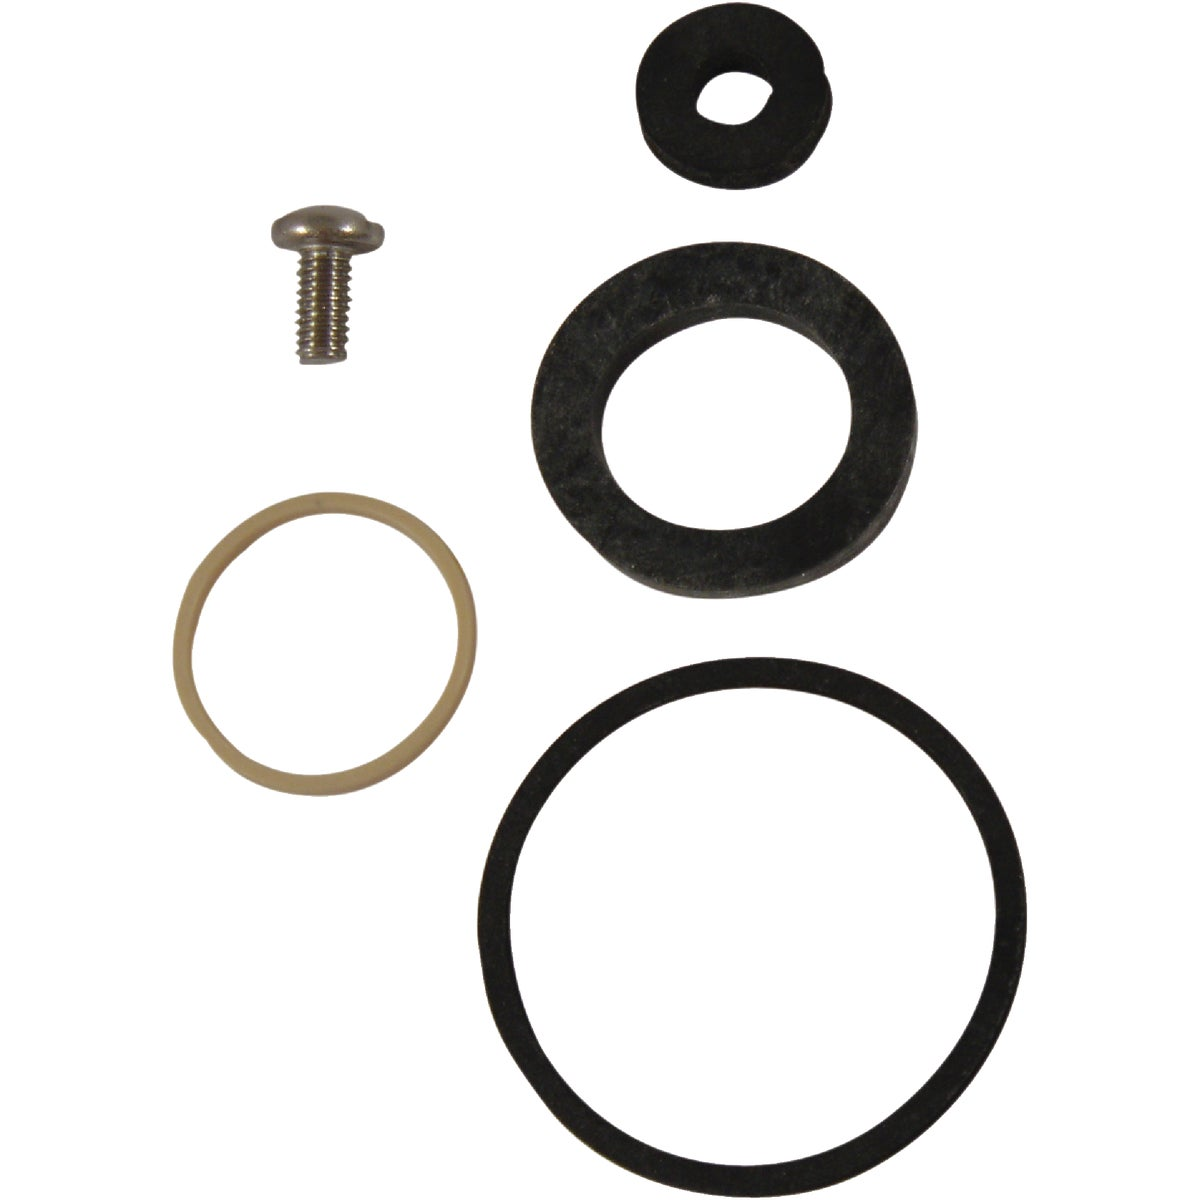 TA9 SYMMONS REPAIR KIT - 9D00038748 by Danco Perfect Match